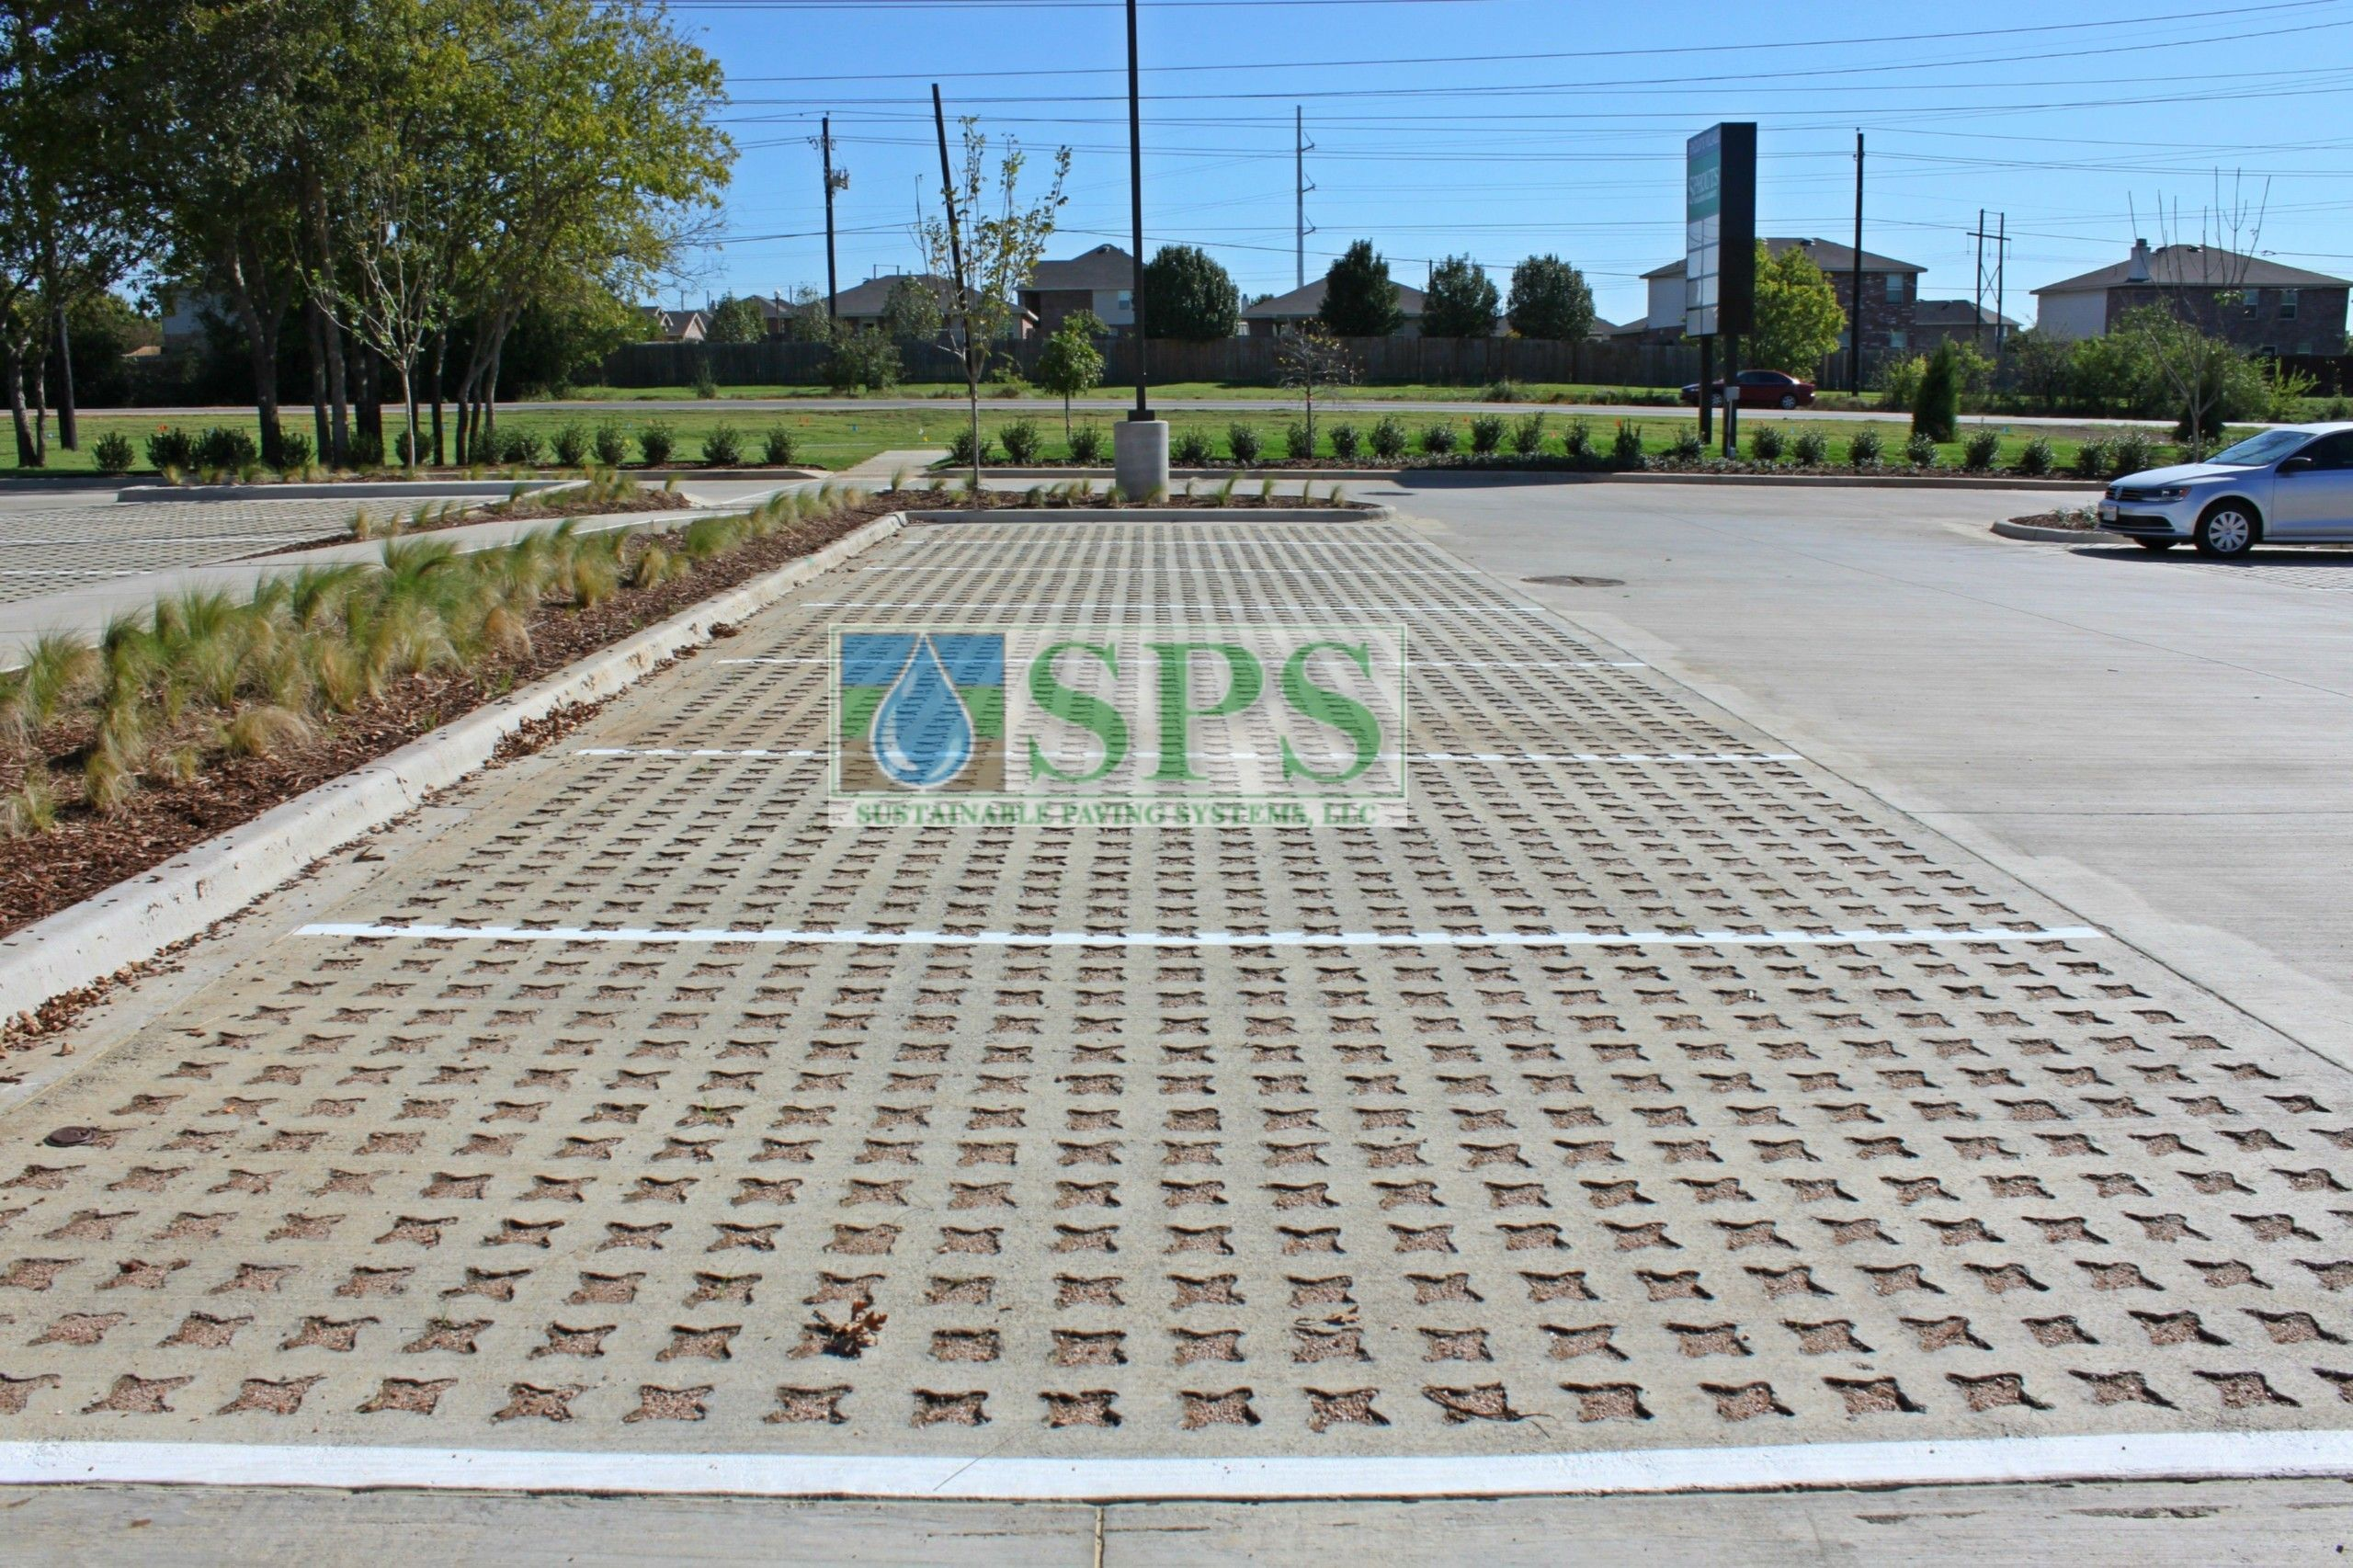 Wider view of parking spaces at Sprouts Farmers Market in Denton, TX, using Grasscrete Stone Filled System installed by Texas Bomanite.